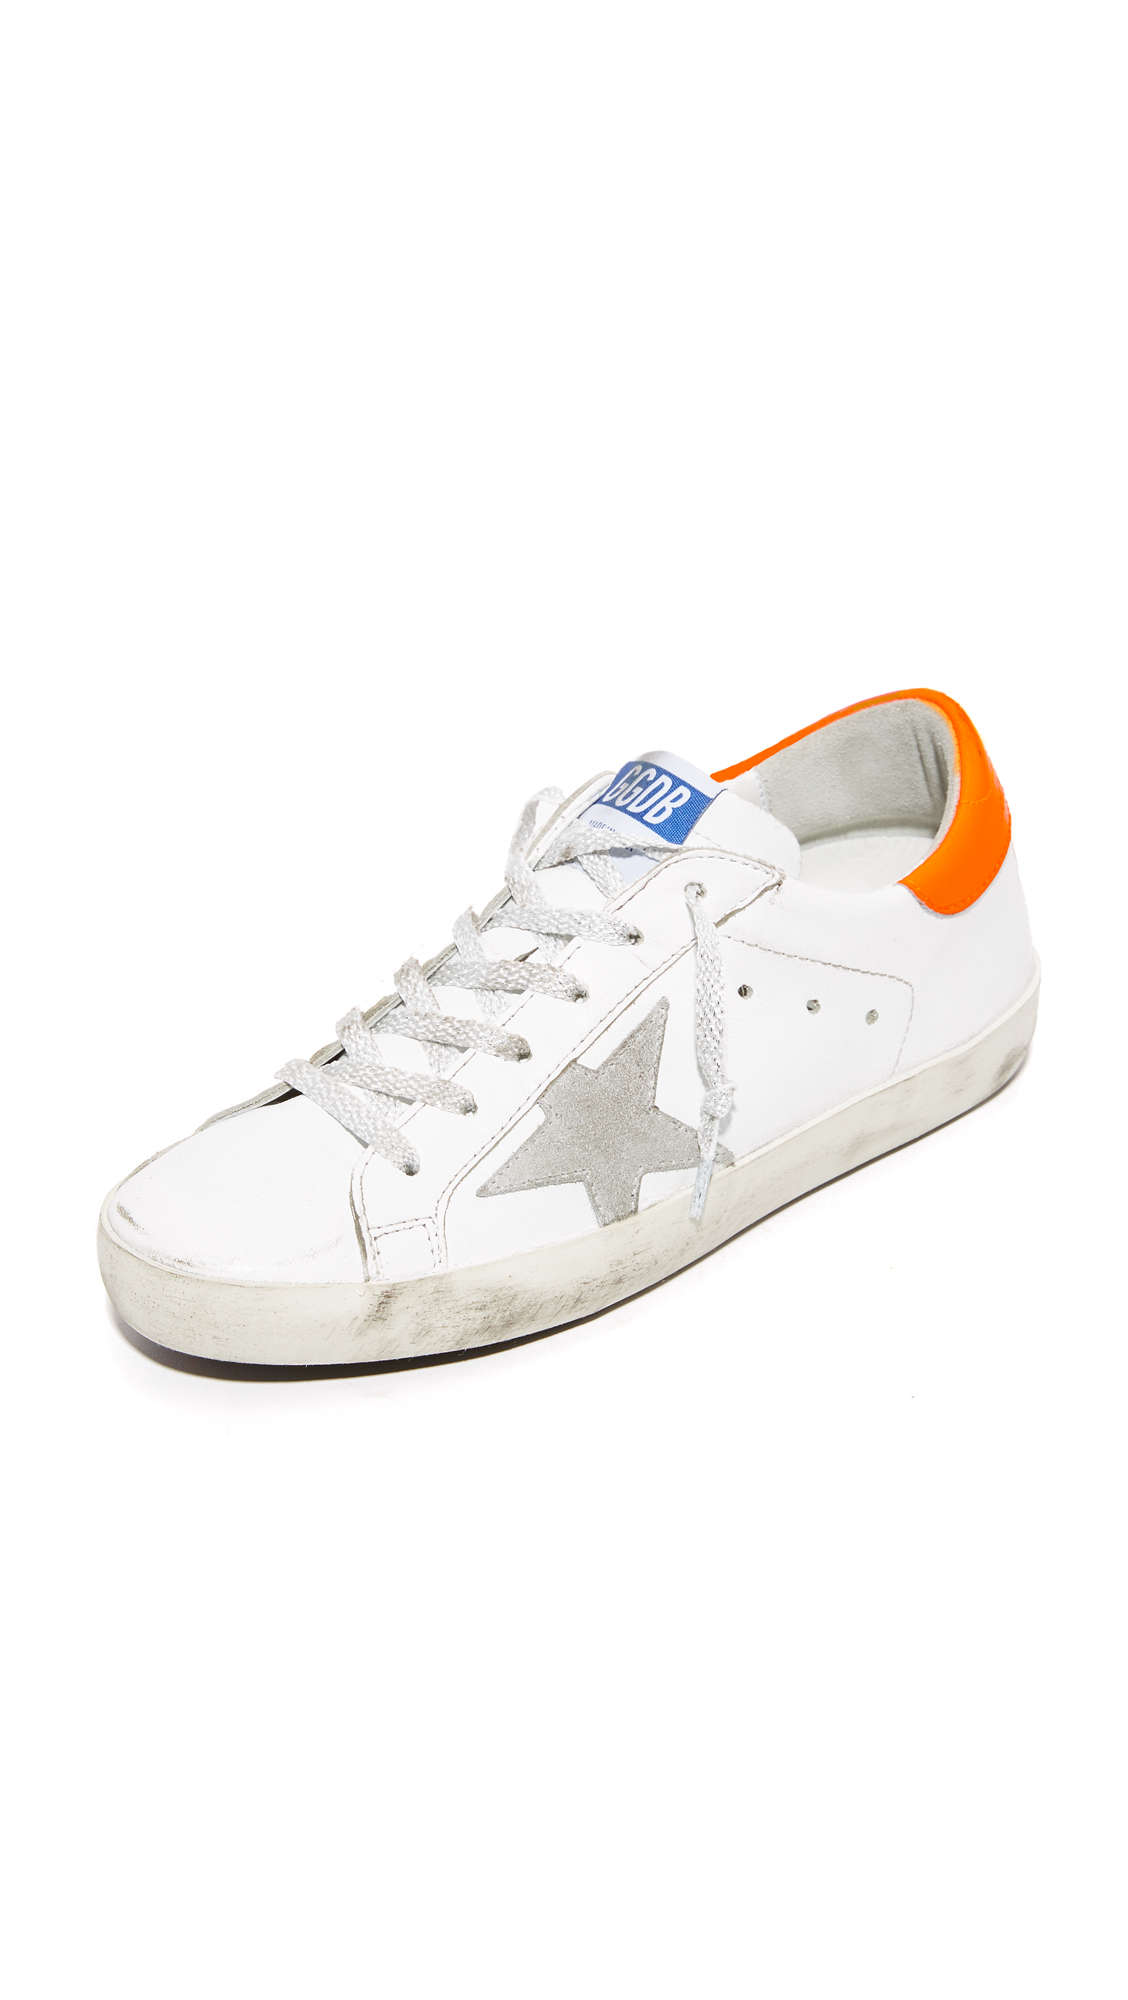 Golden Goose Superstar Sneakers - White/Fluro Orange